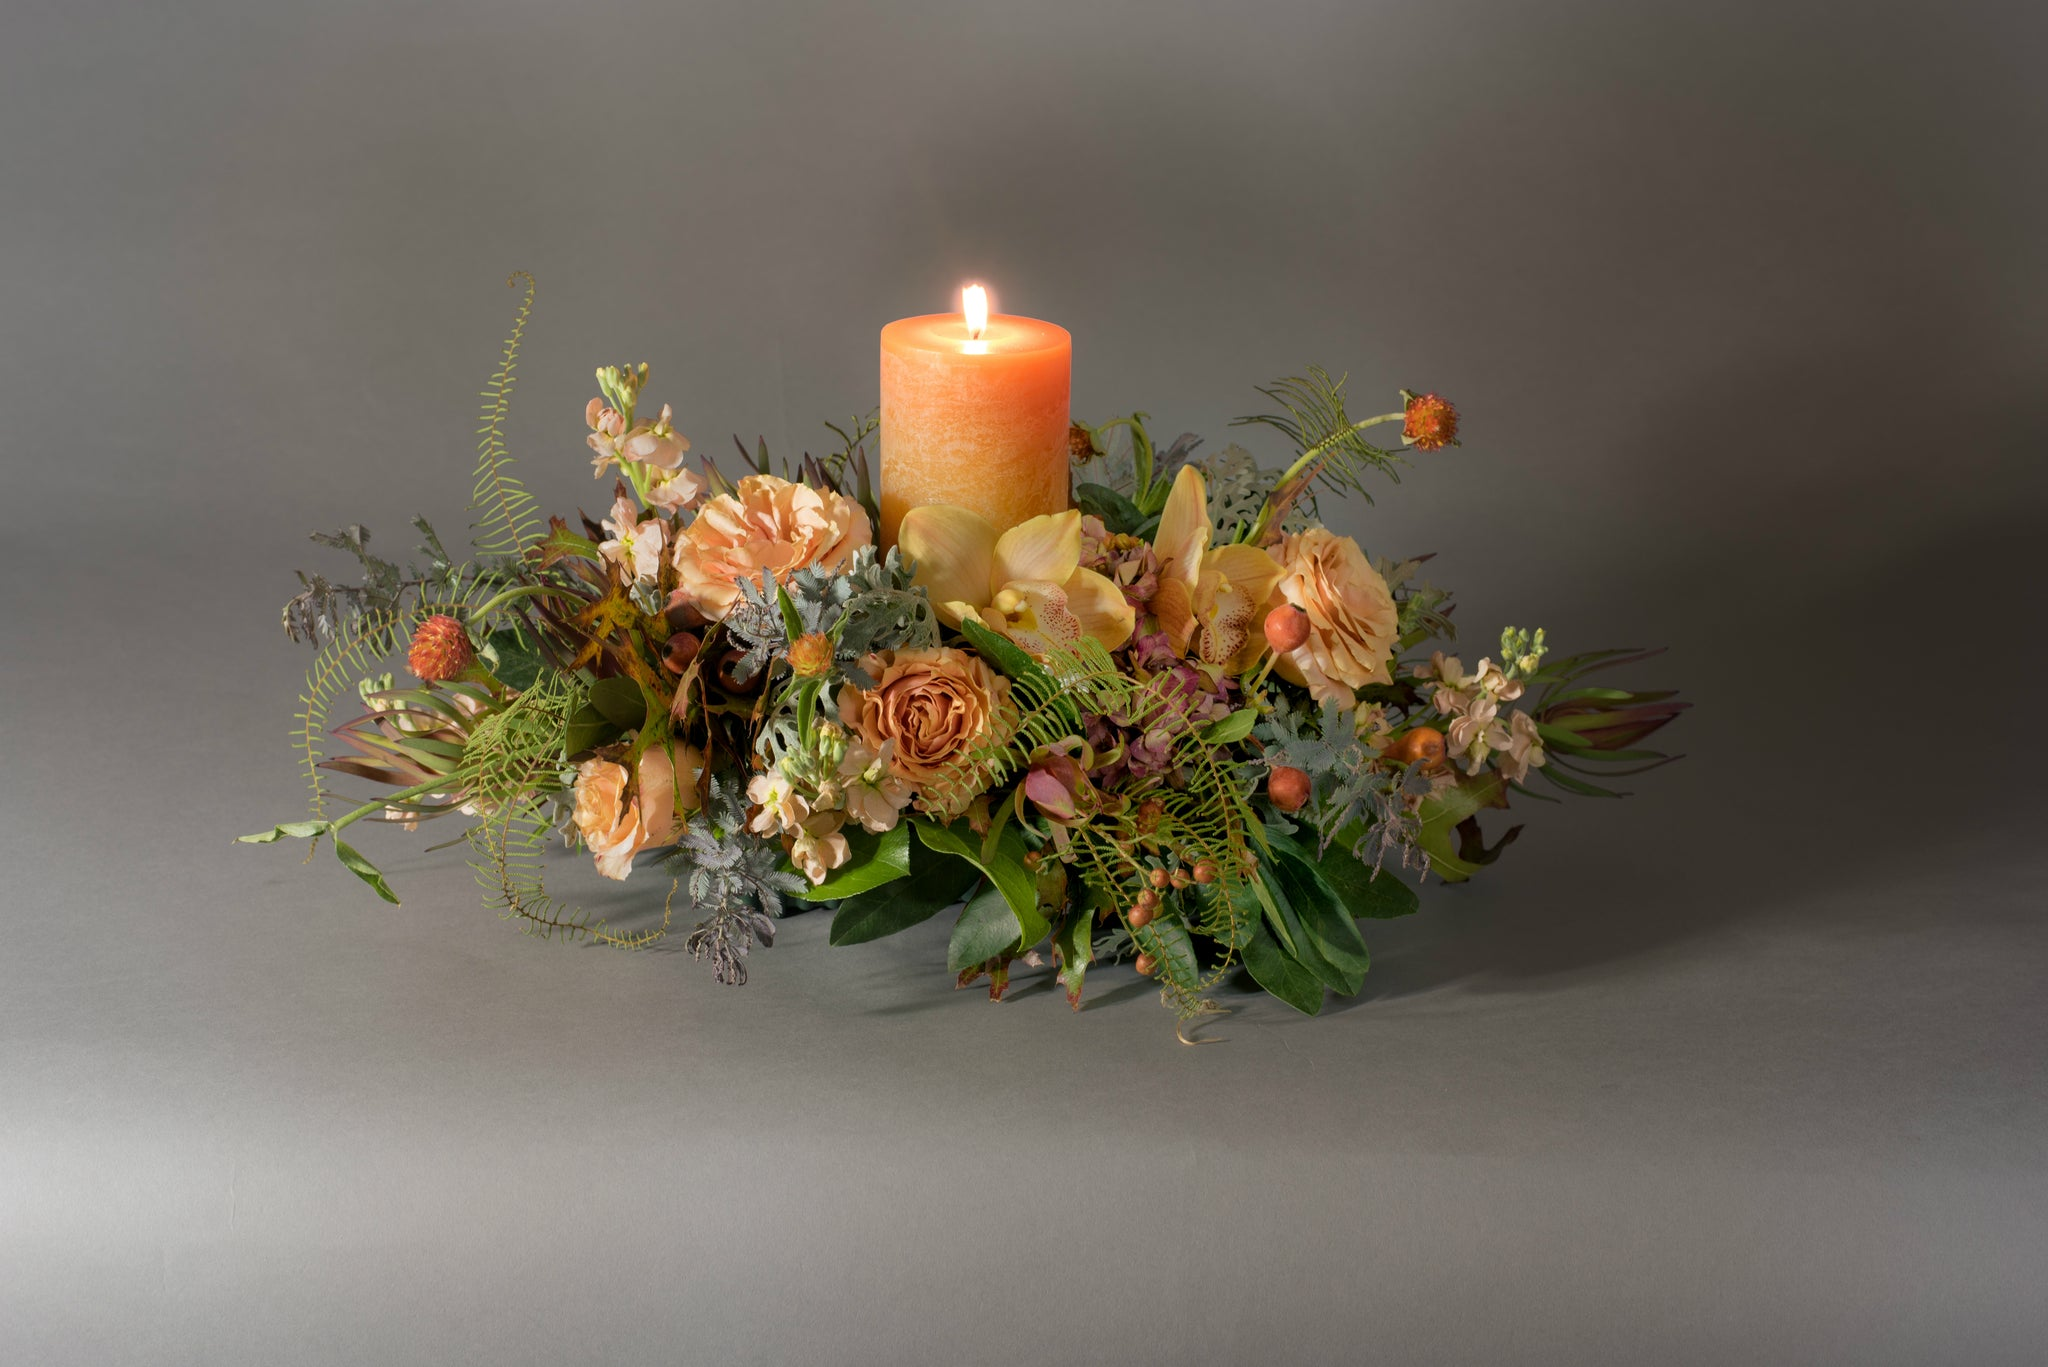 Low & lush centerpiece with timber candle